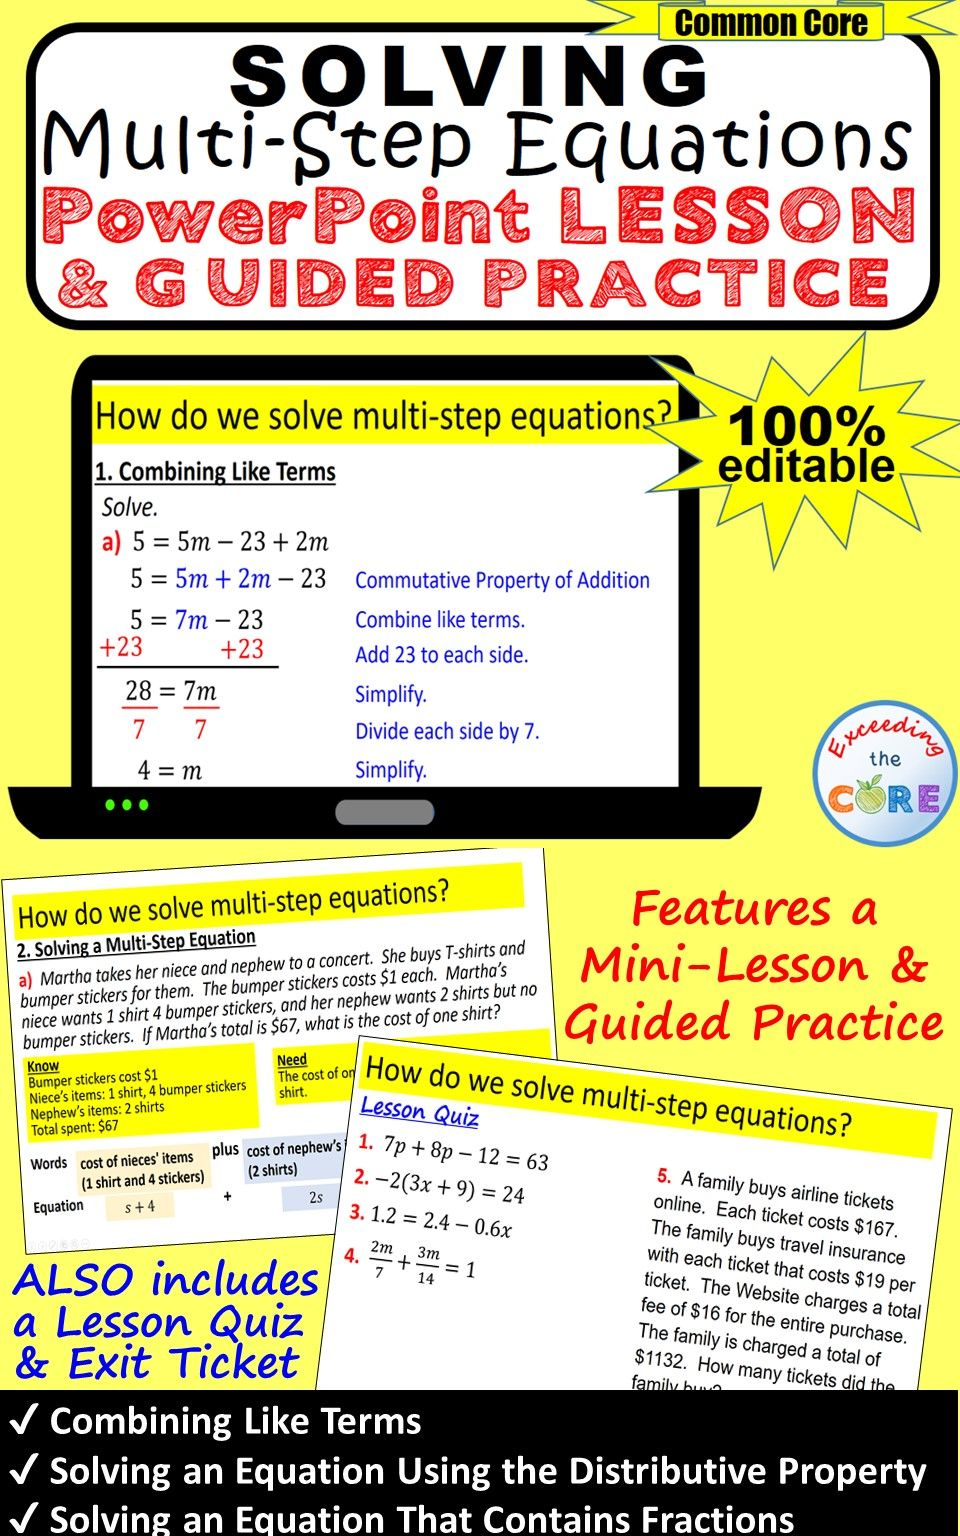 SOLVING MULTI-STEP EQUATIONS PowerPoint Mini-Lesson & Guided